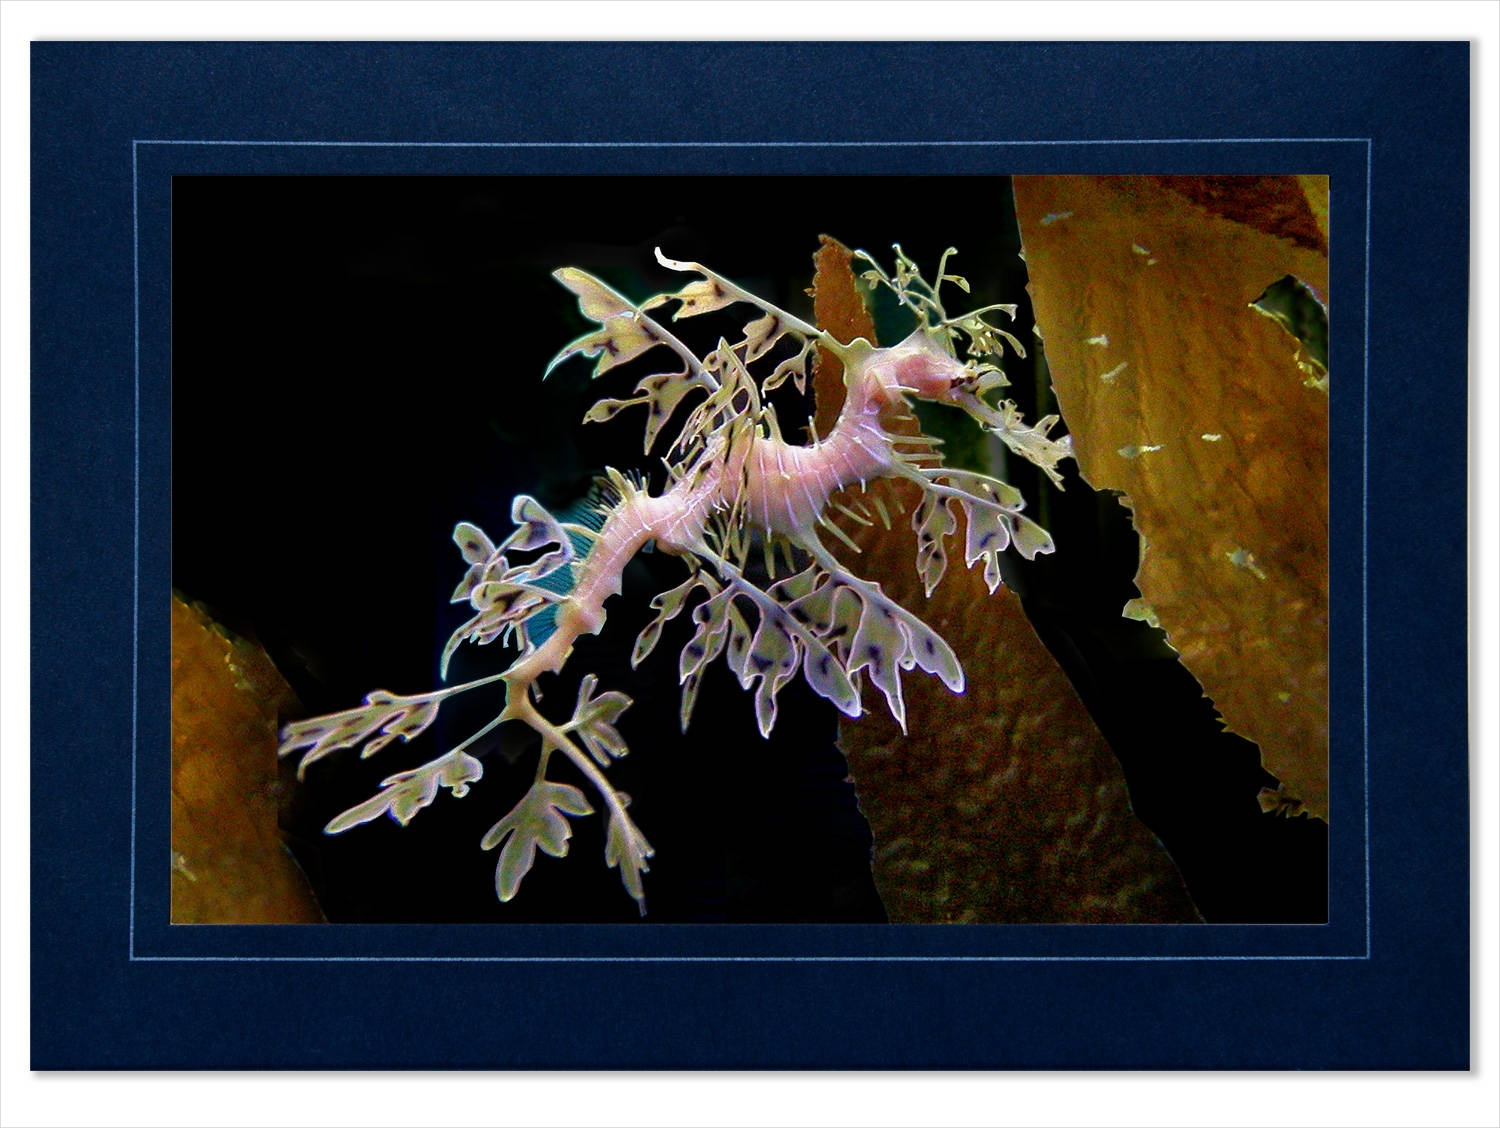 leafy sea dragon photo greeting card